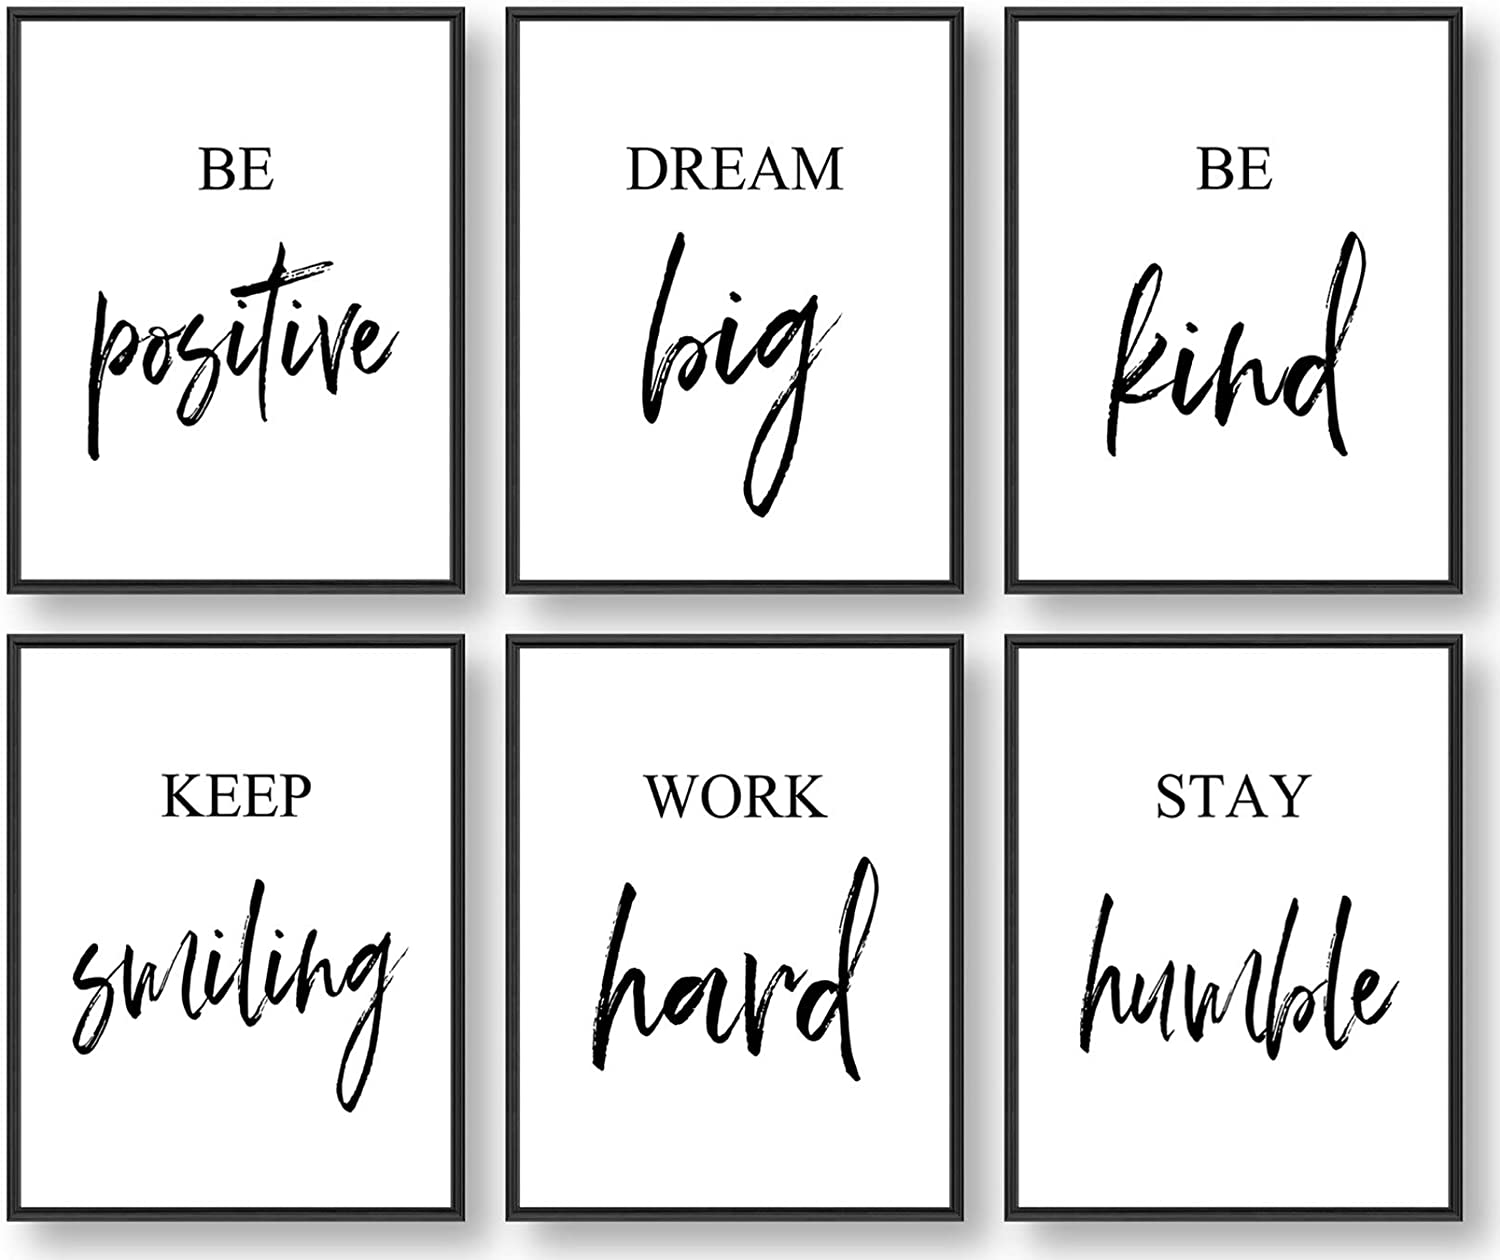 Amazon Com Inspirational Wall Art Motivational Wall Art Office Wall Decor Wall Art For Living Room And Bedroom Office Decor Set Of 6 8x10in Unframed Posters Prints